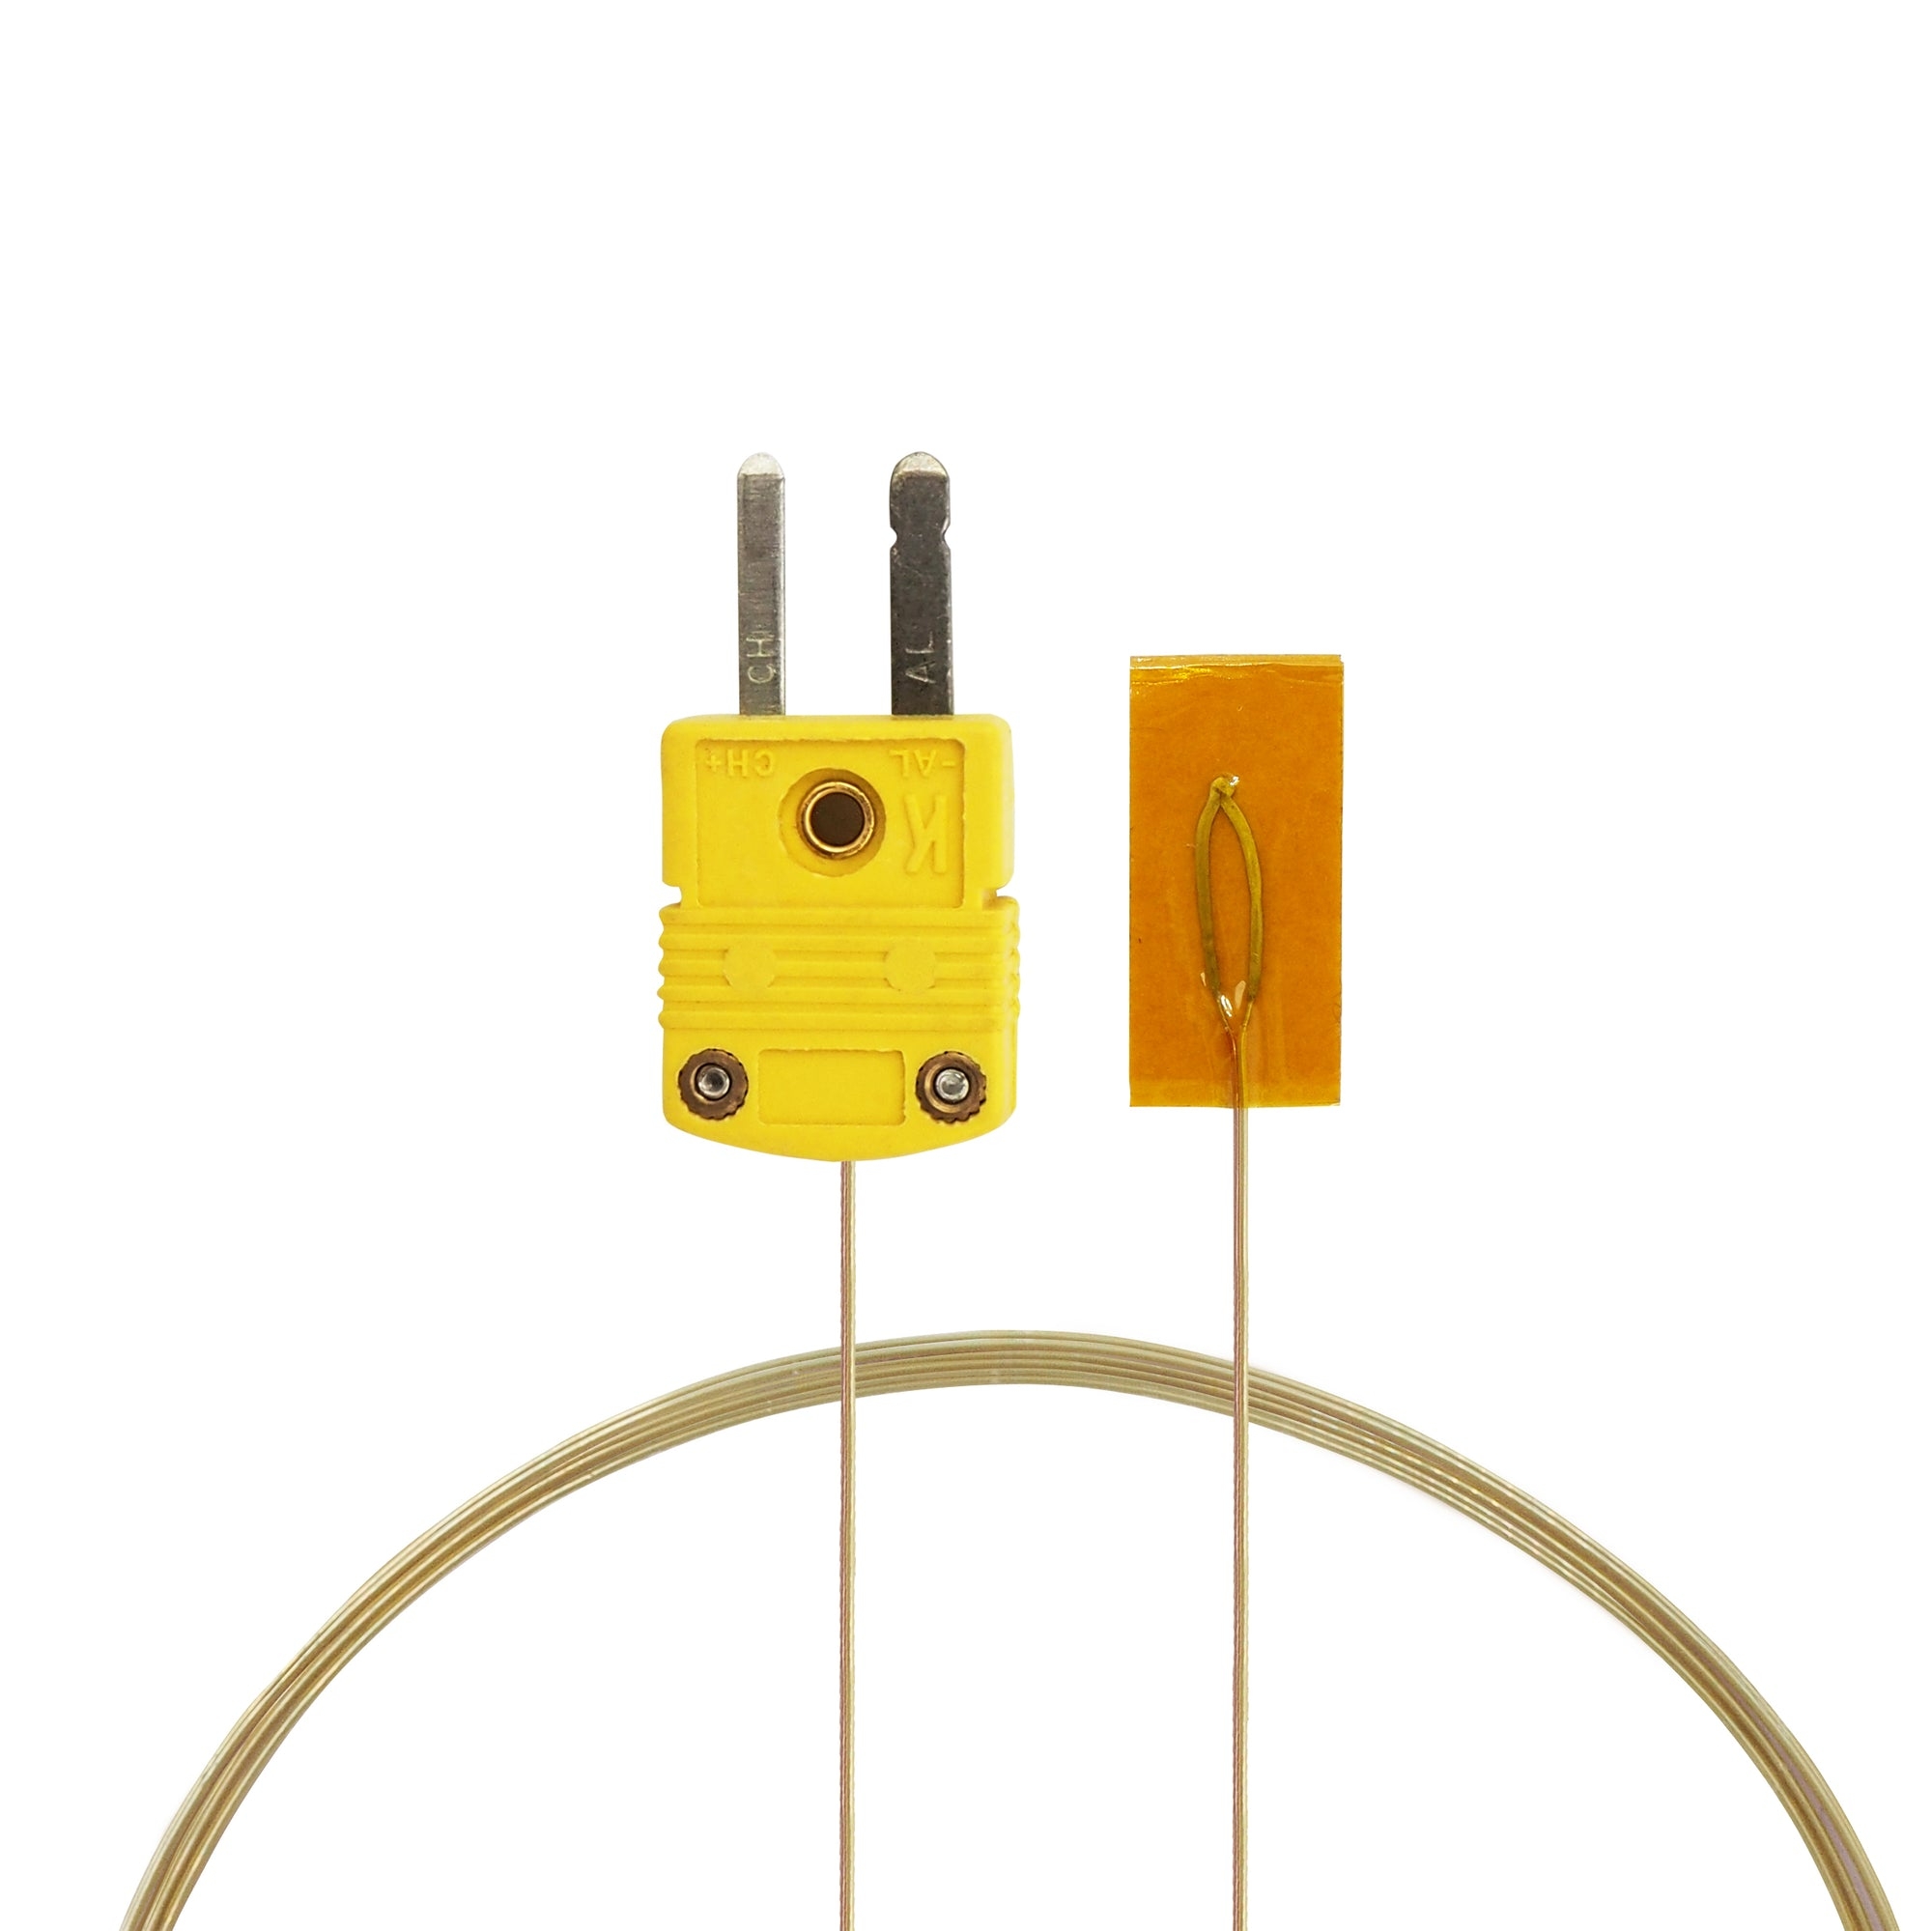 Surface Contact 0.25 mm diameter K-Type Sensor Probe with Sticker for K-Type Thermocouple, Yellow Cable, Main